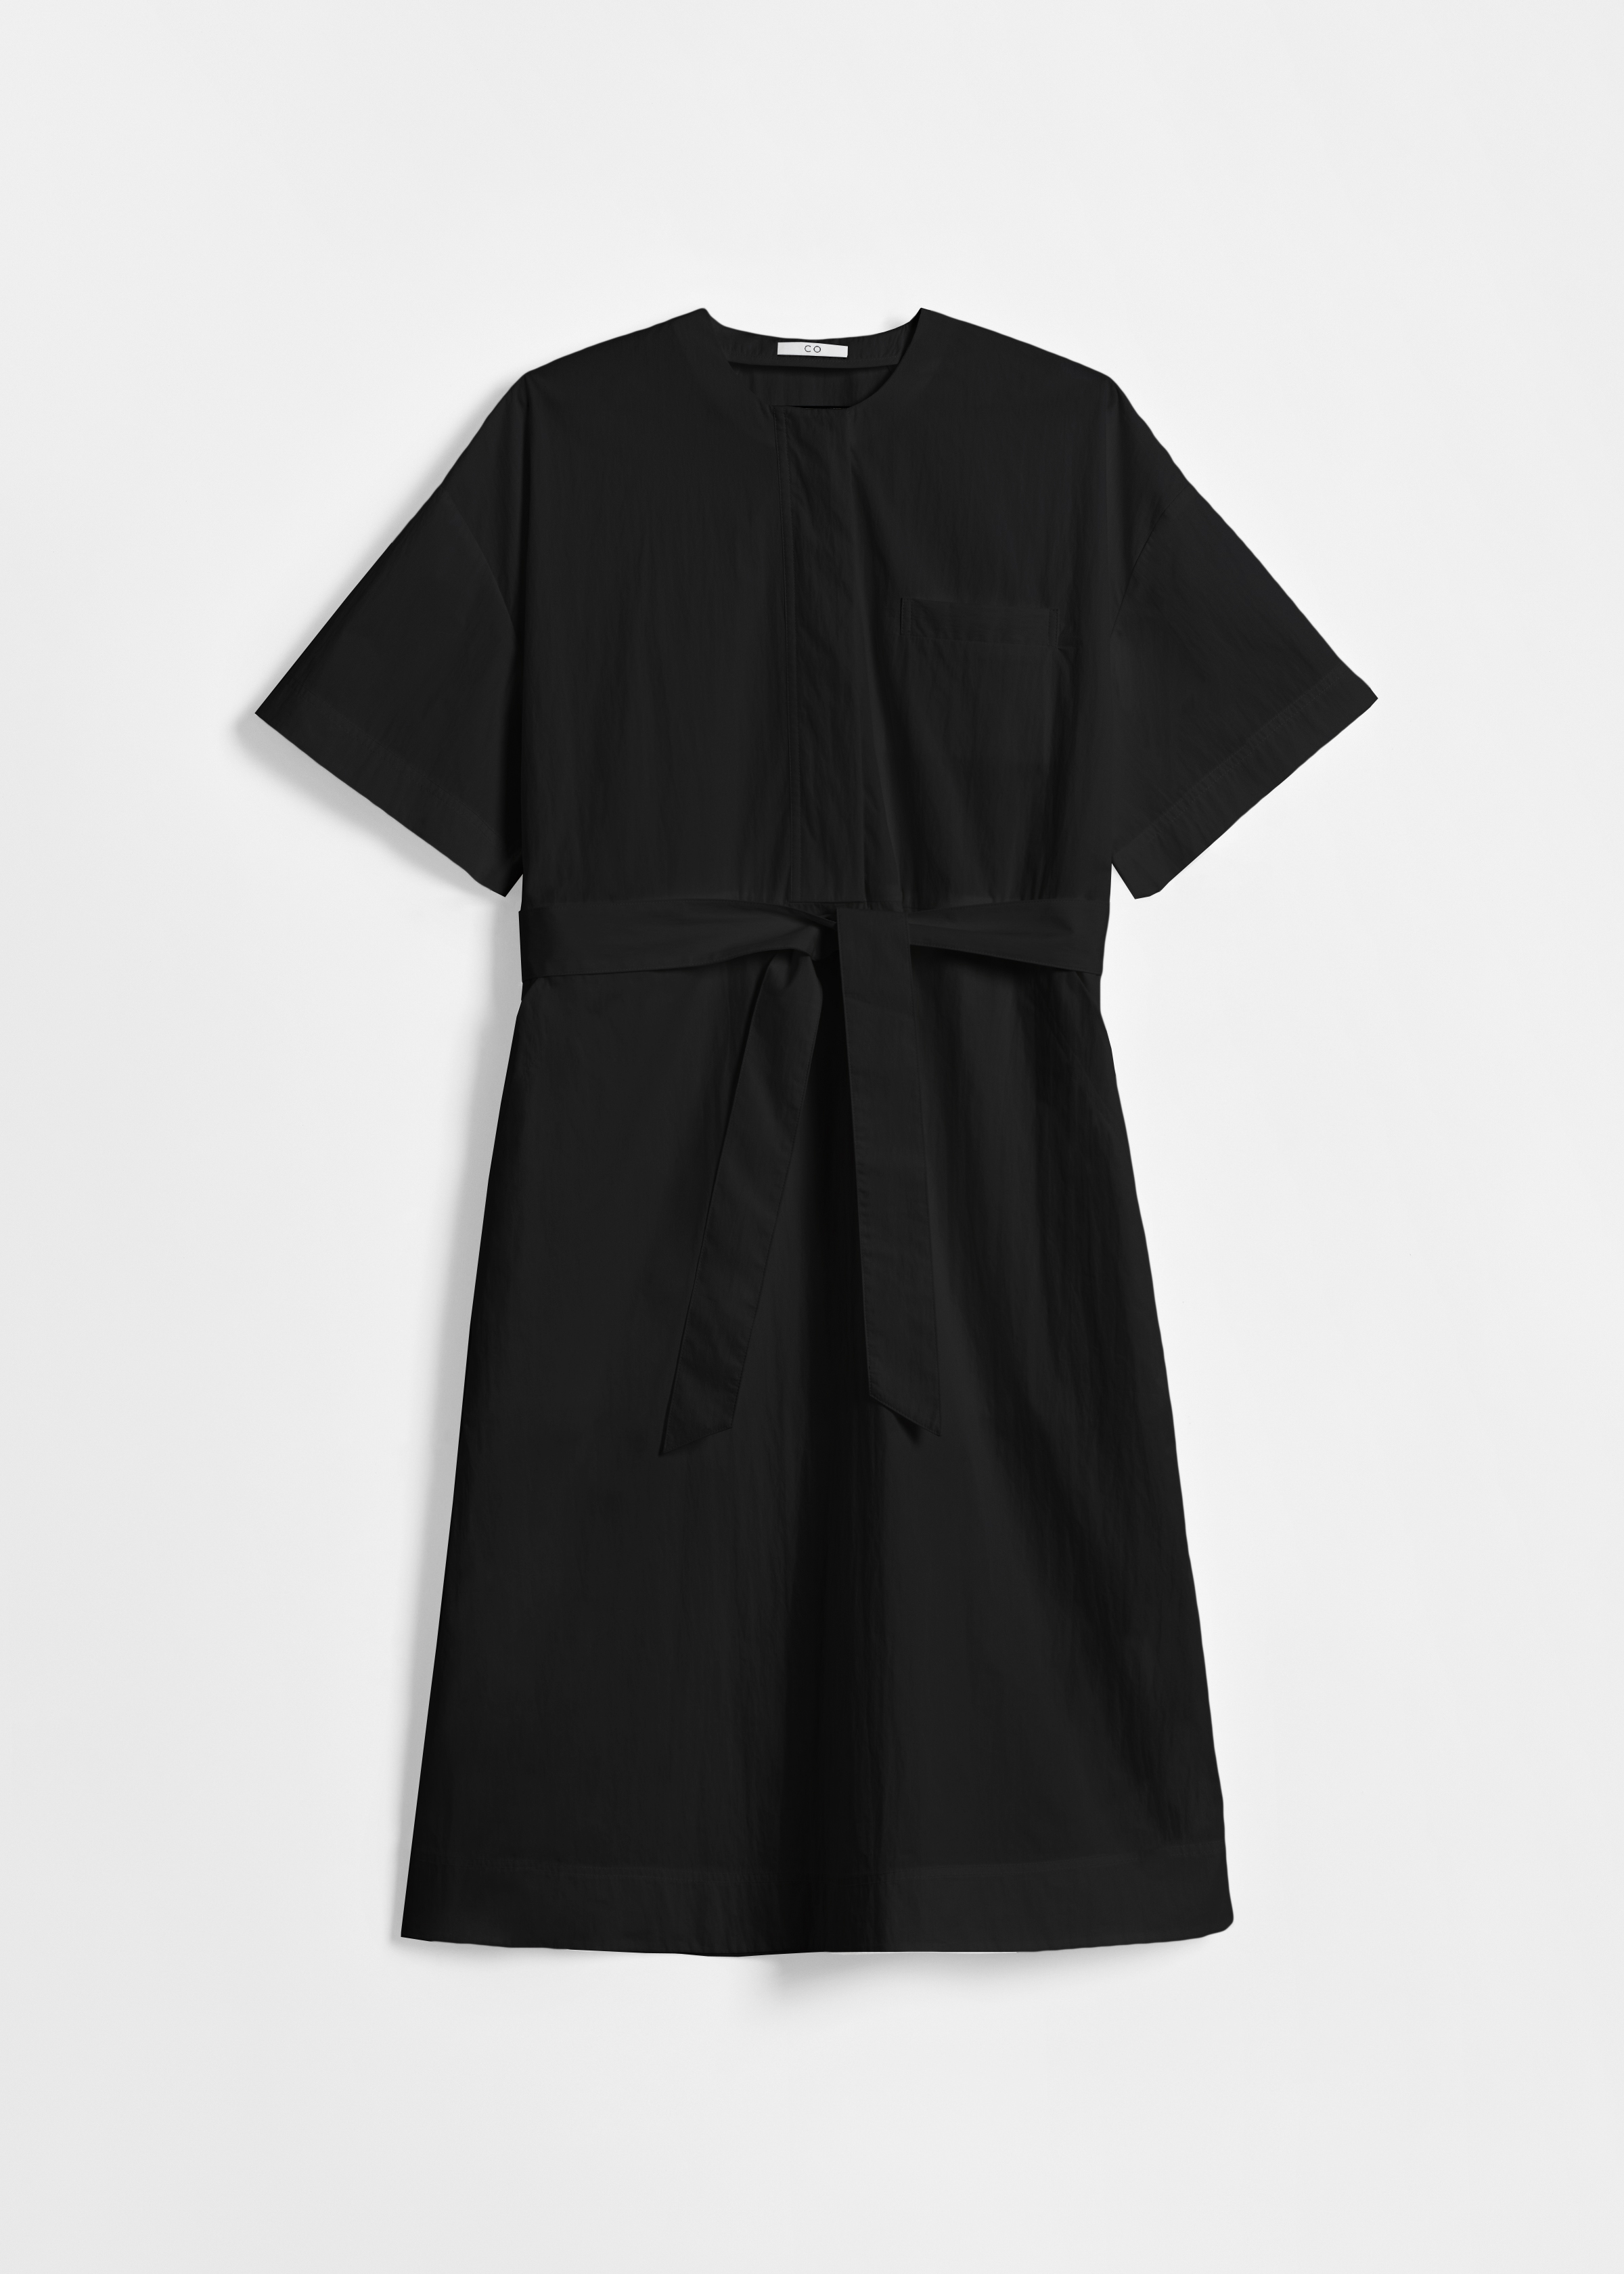 Belted Short Sleeve Dress in Cotton - White in Black by Co Collections